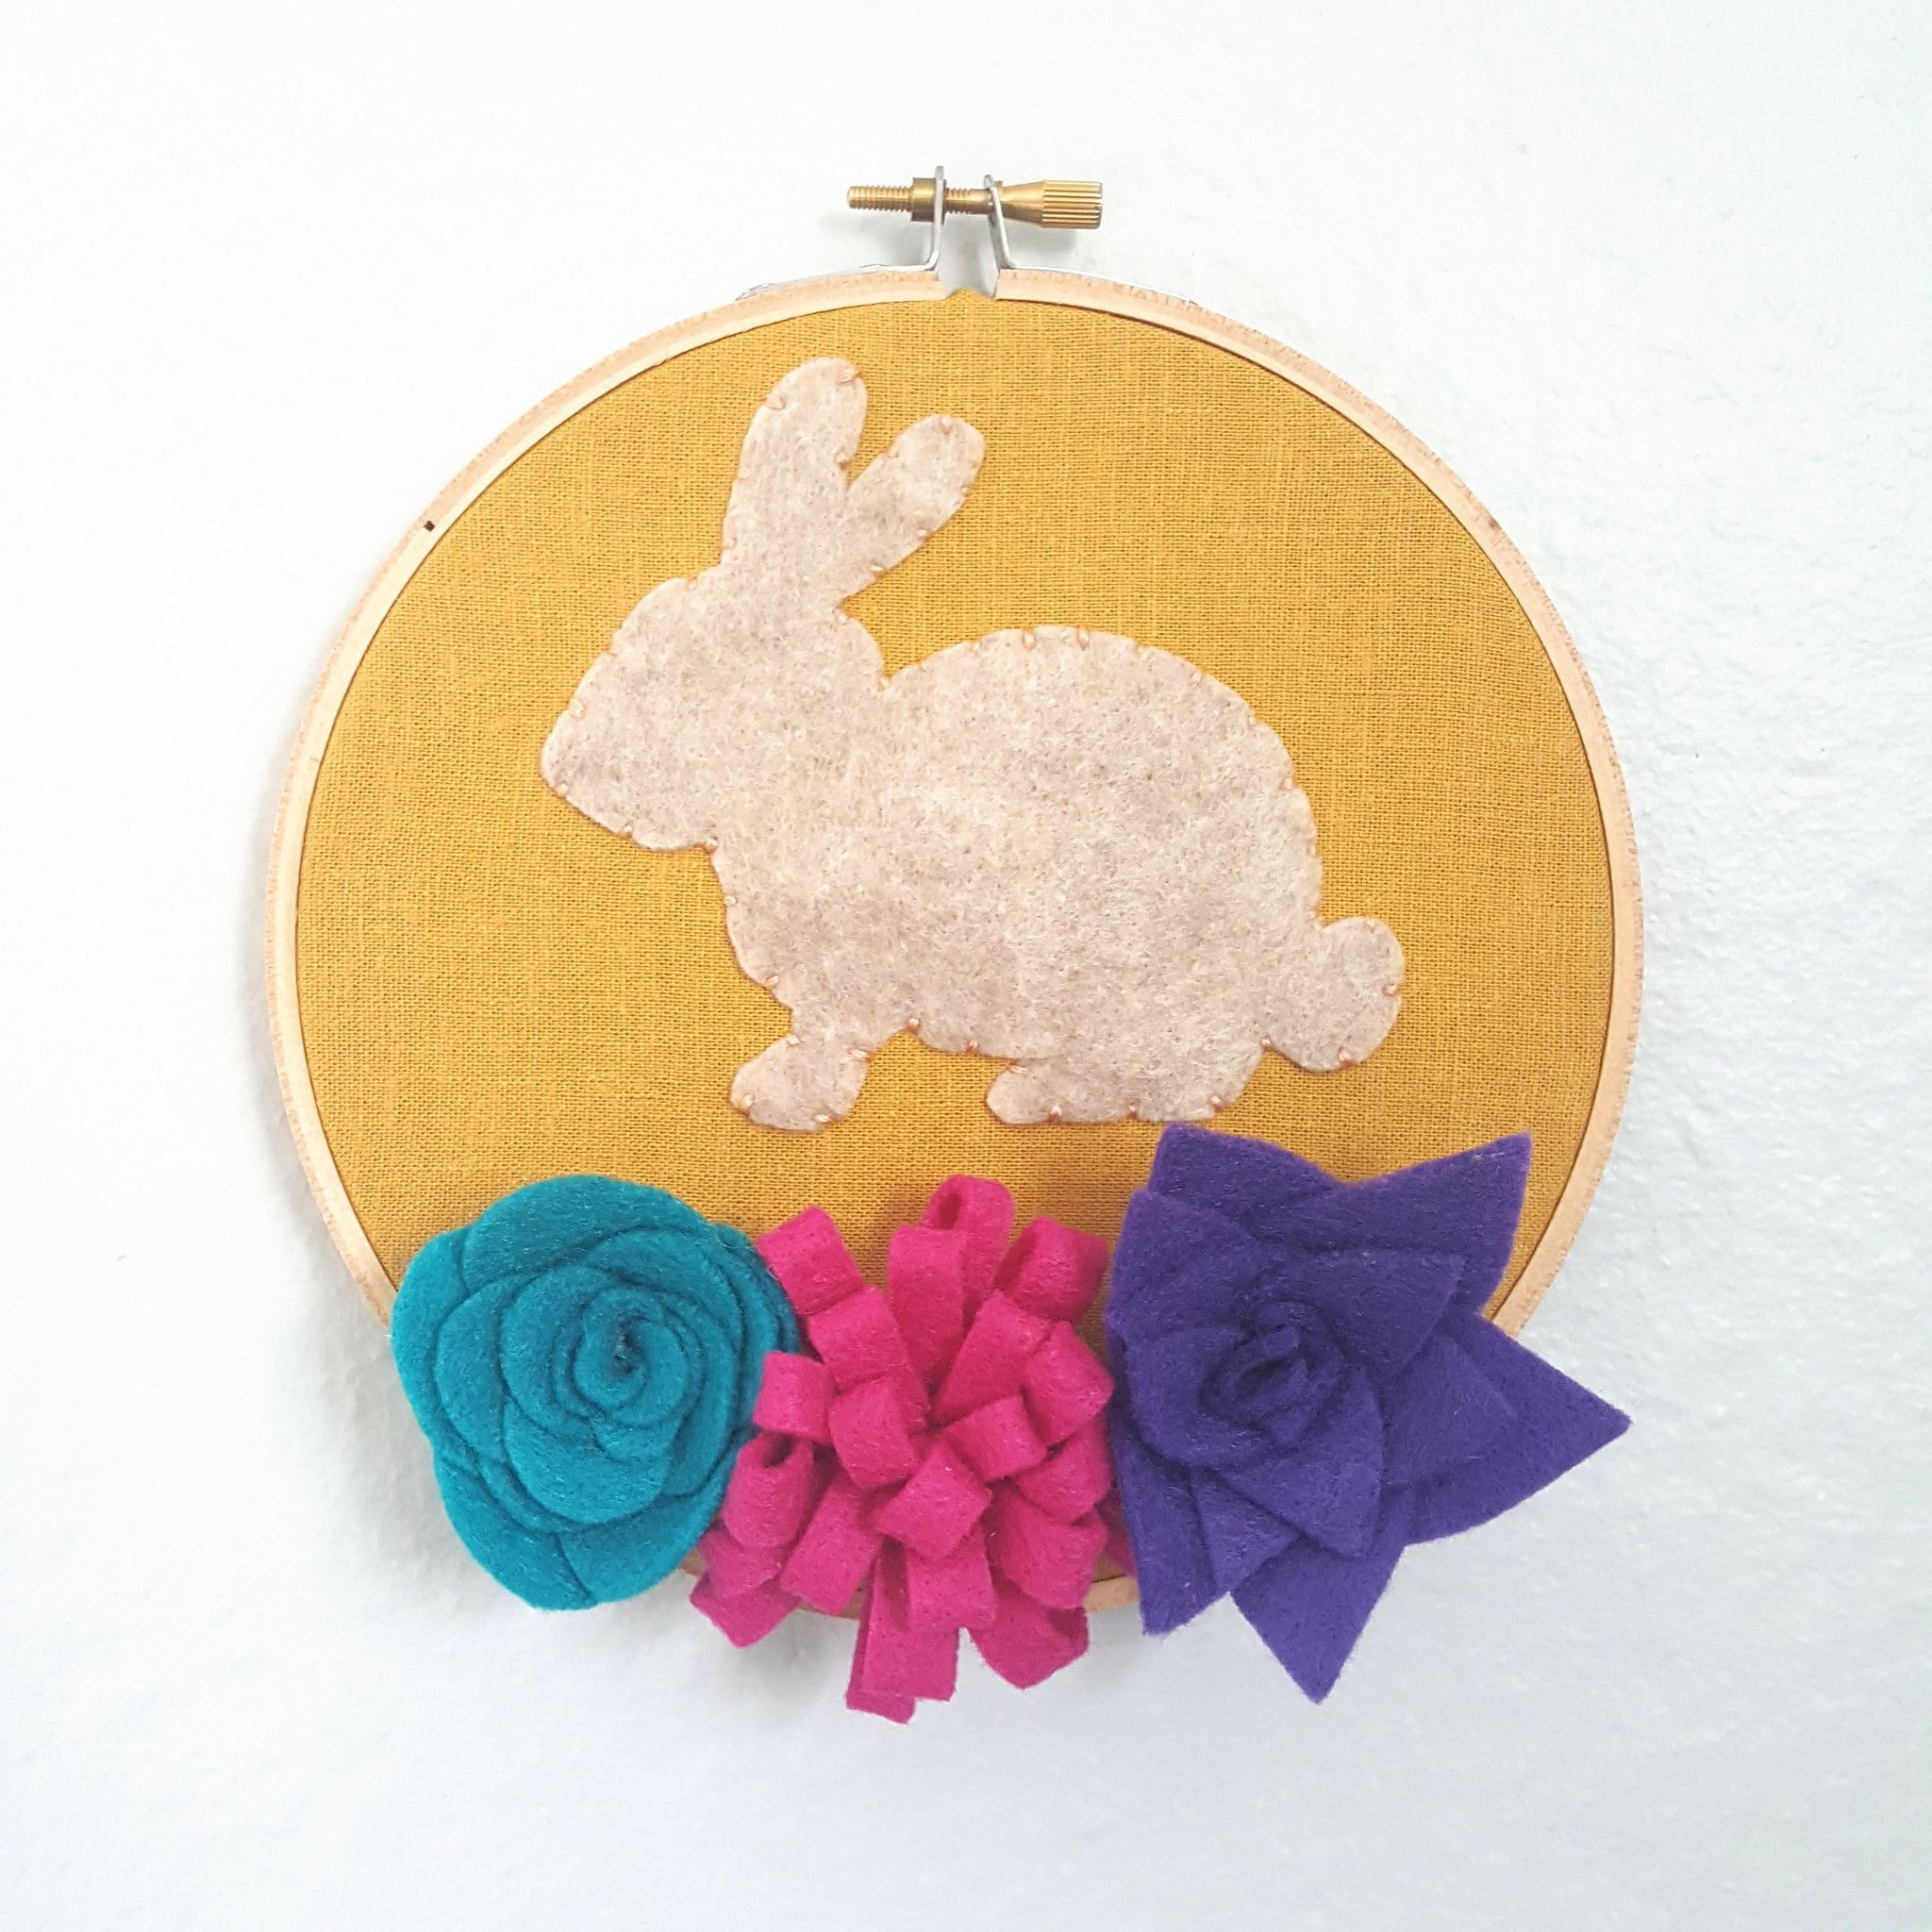 Rabbit Embroidery with Felt Flowers Wall Art | Embroidery Hoop Art ...